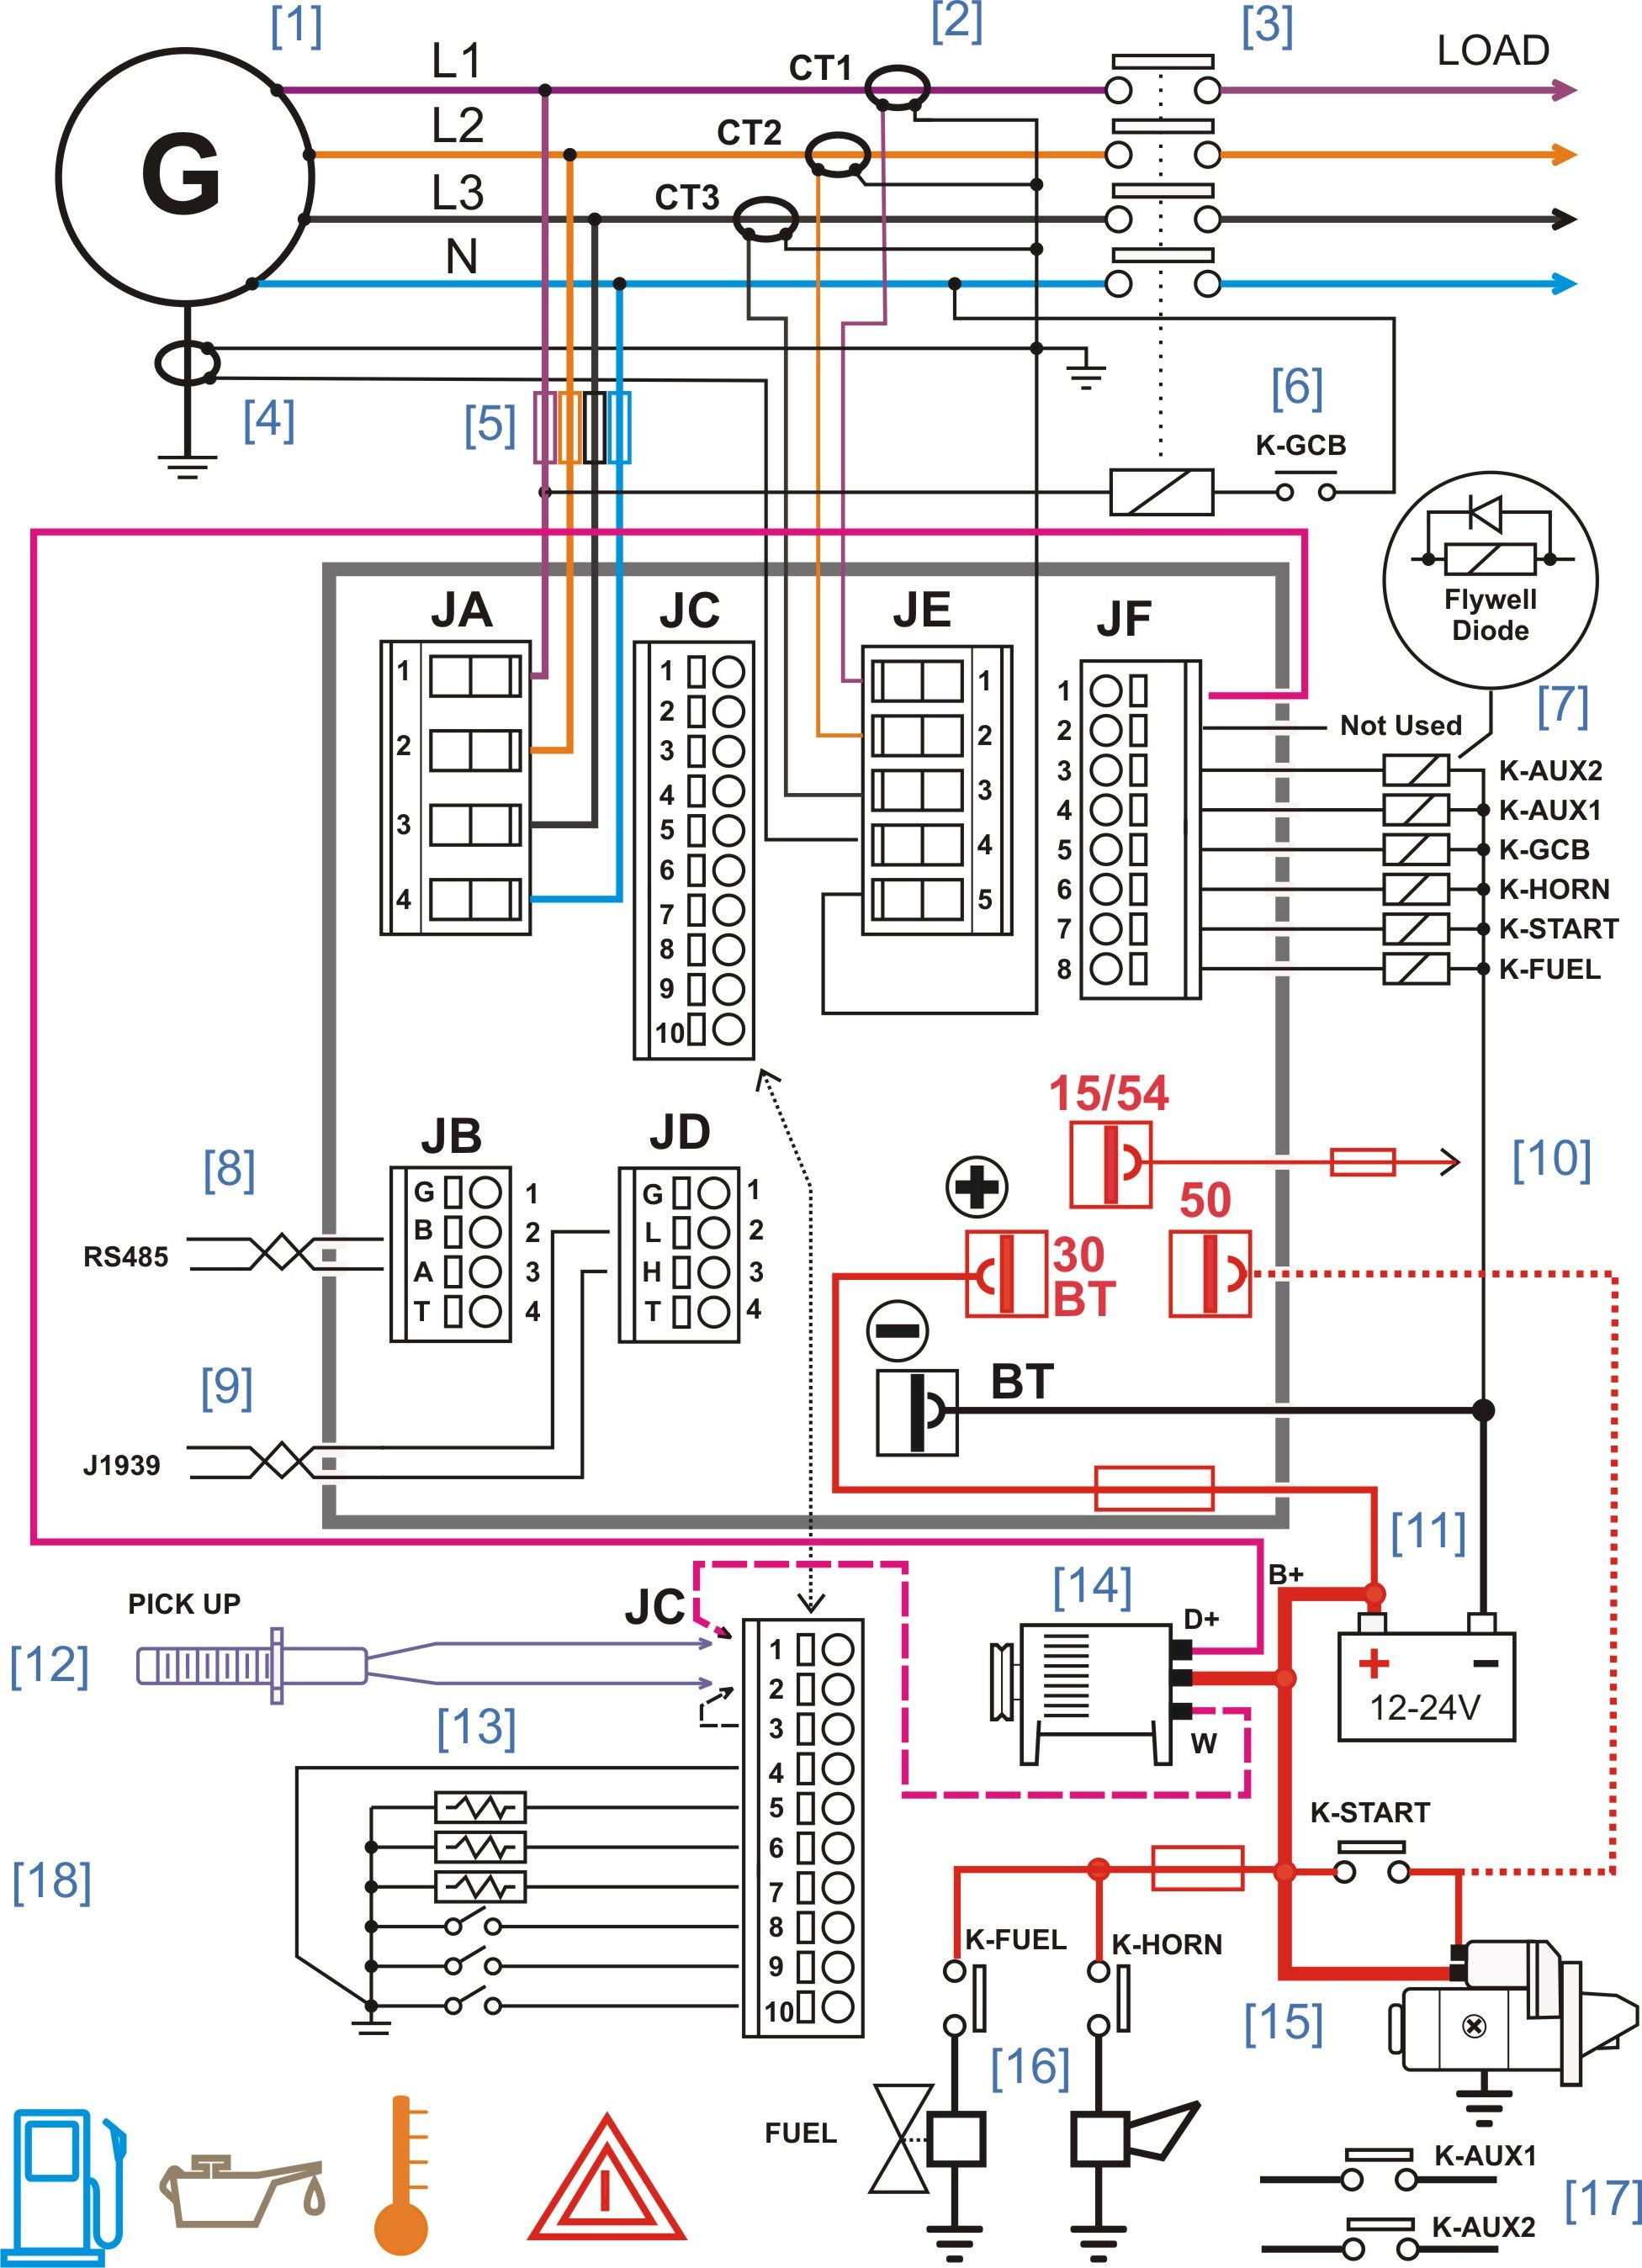 electrical control panel wiring diagram Download-Aircraft Electrical Wiring Diagram Best Diesel Generator Control Panel Wiring Diagram 3-t